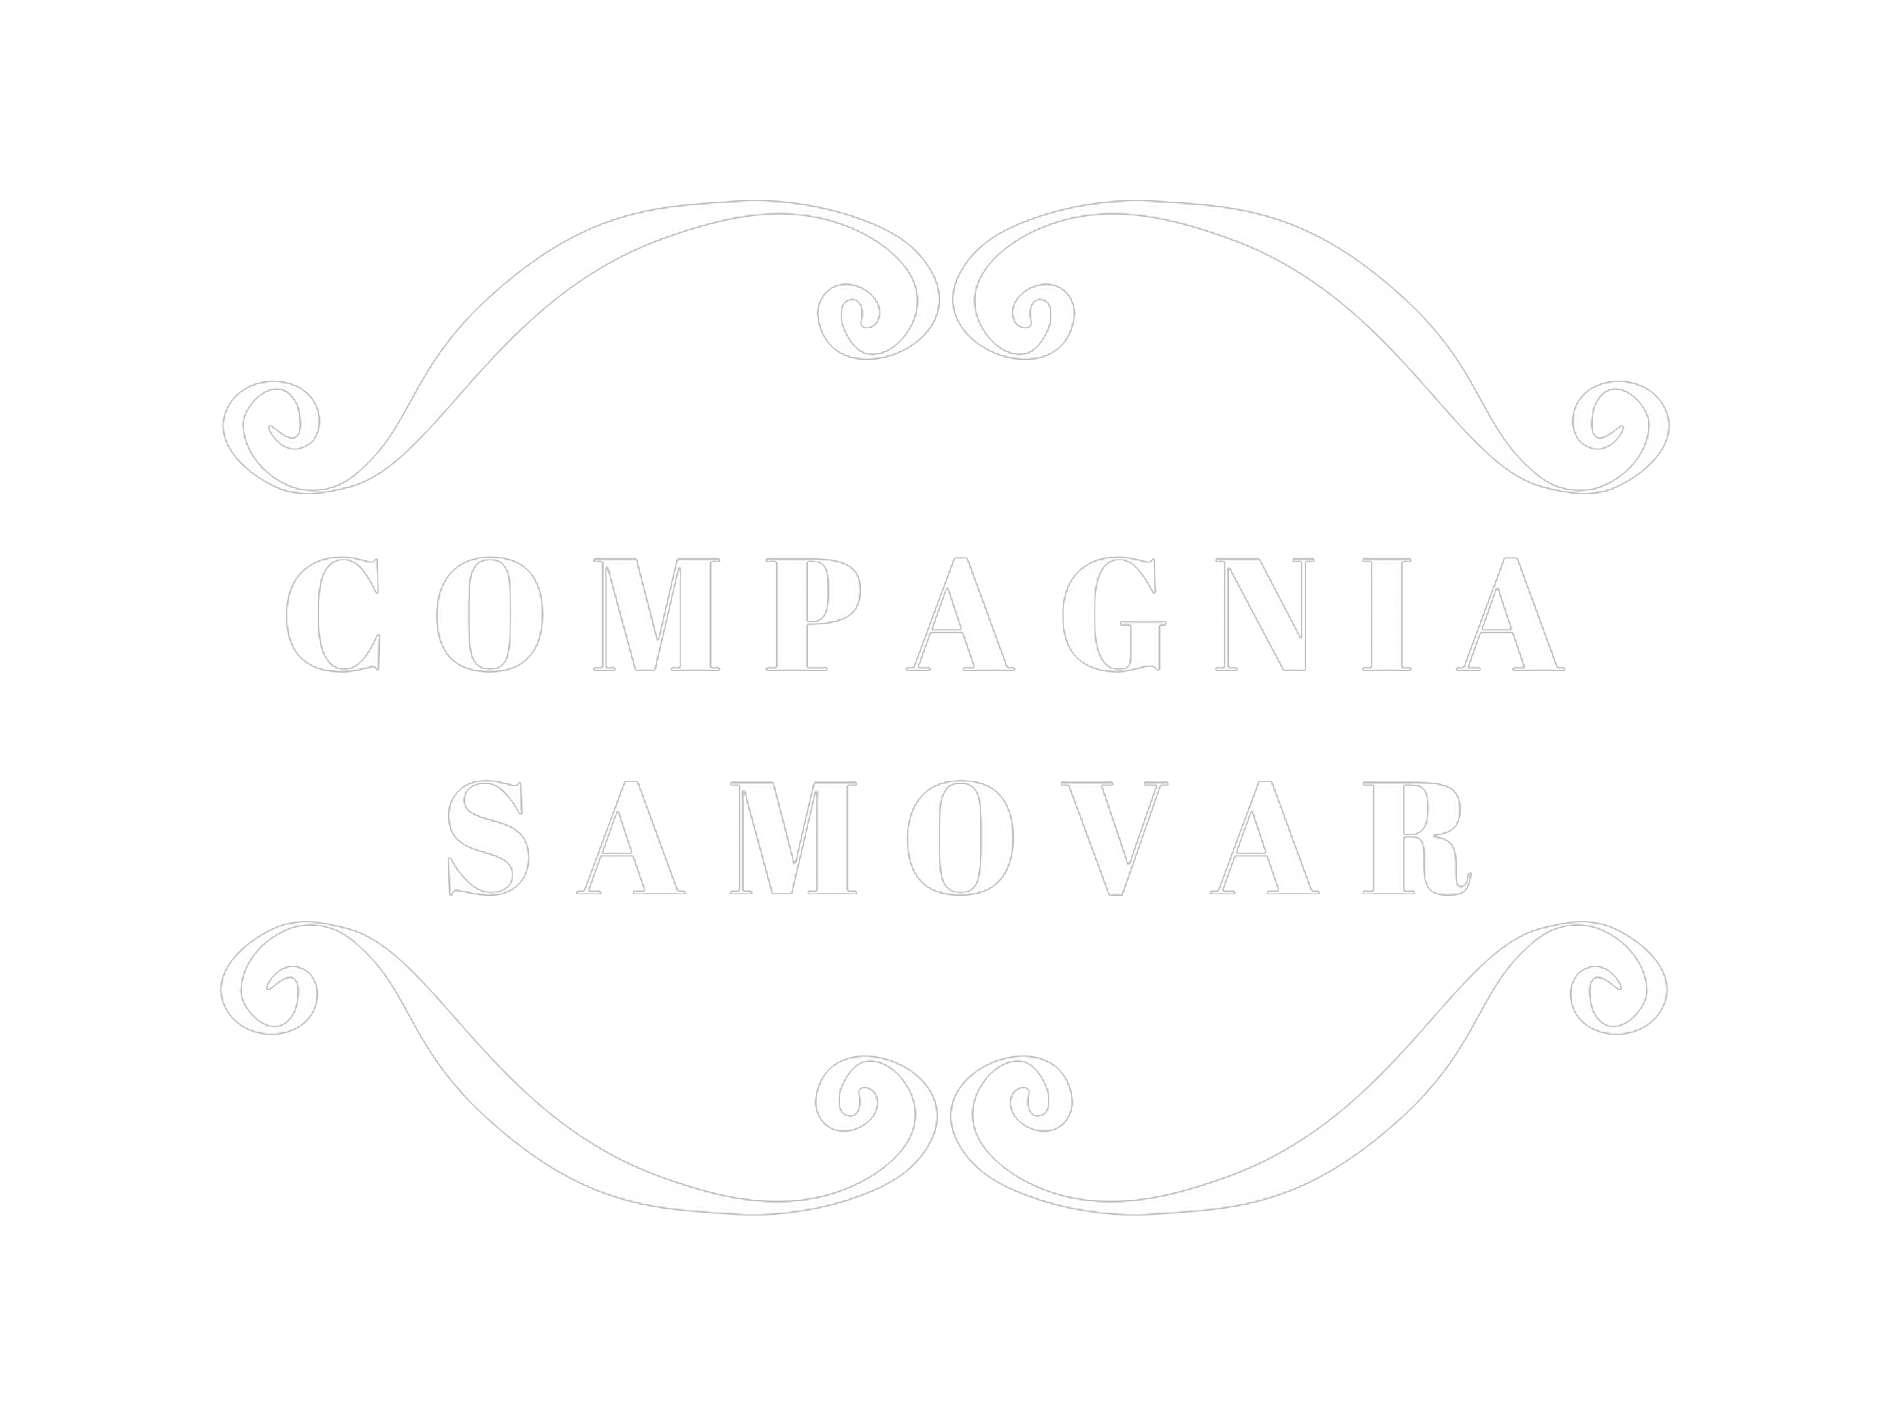 CompagniaSamovar.it